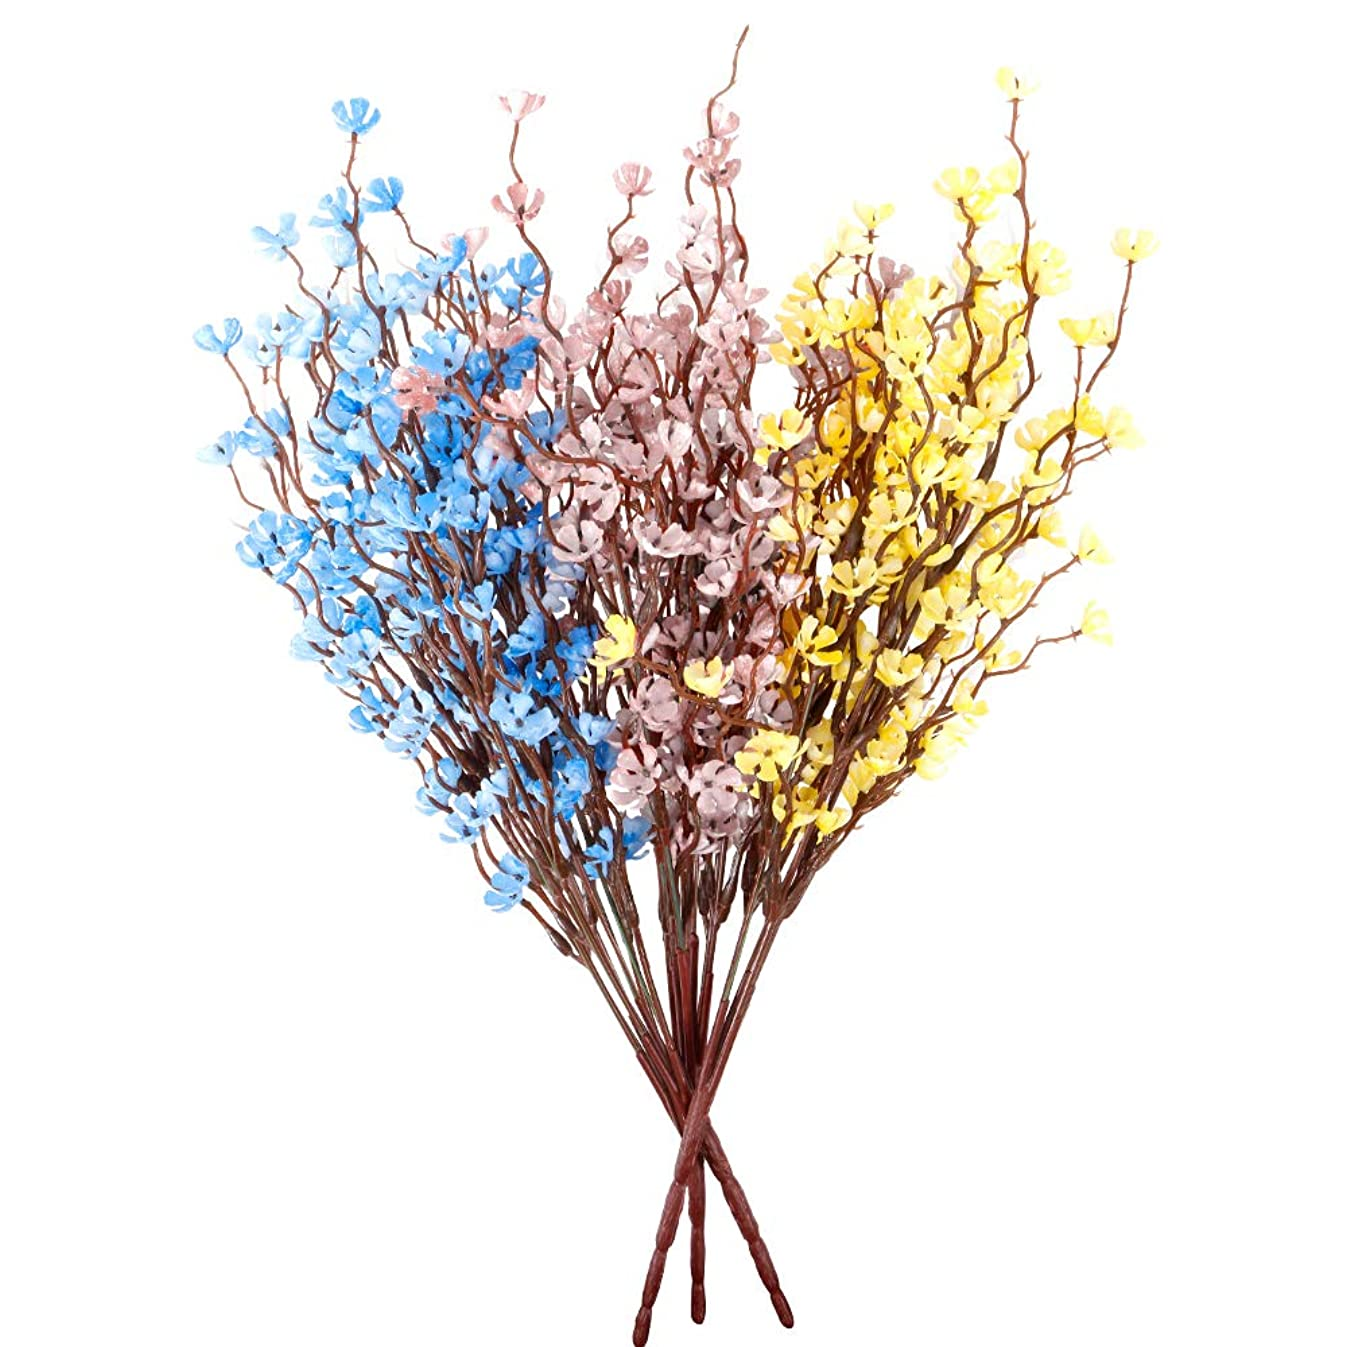 Artificial Flower (Pack of 3colour),Purifiable Air Photocatalyst Material Never Fade.Artificial Greenery Foliage Plants Stems for Wedding, Garden Outside Hanging—New Version